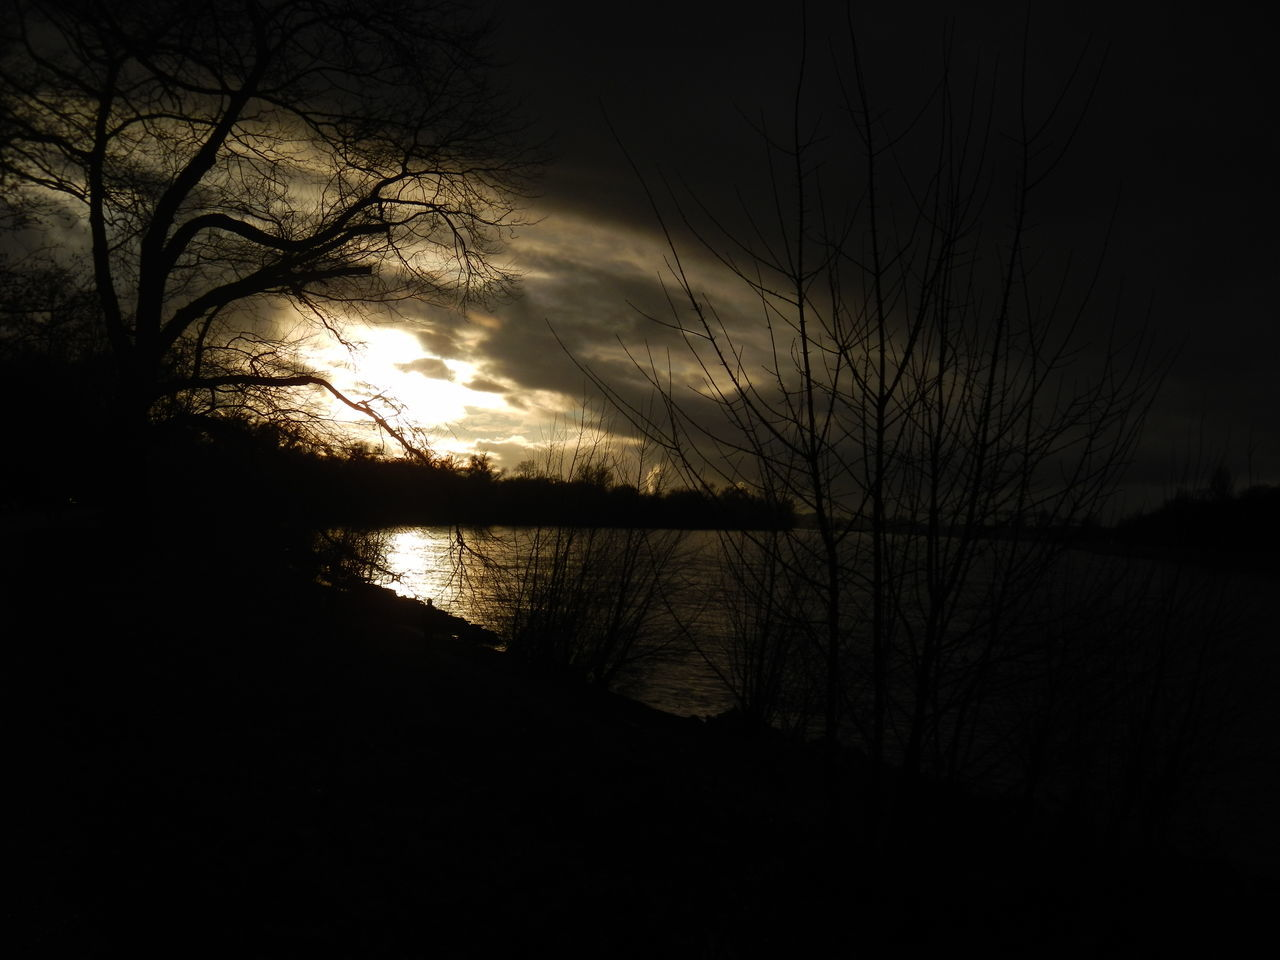 nature, silhouette, beauty in nature, reflection, sunset, tranquility, scenics, tranquil scene, no people, water, sky, outdoors, lake, tree, night